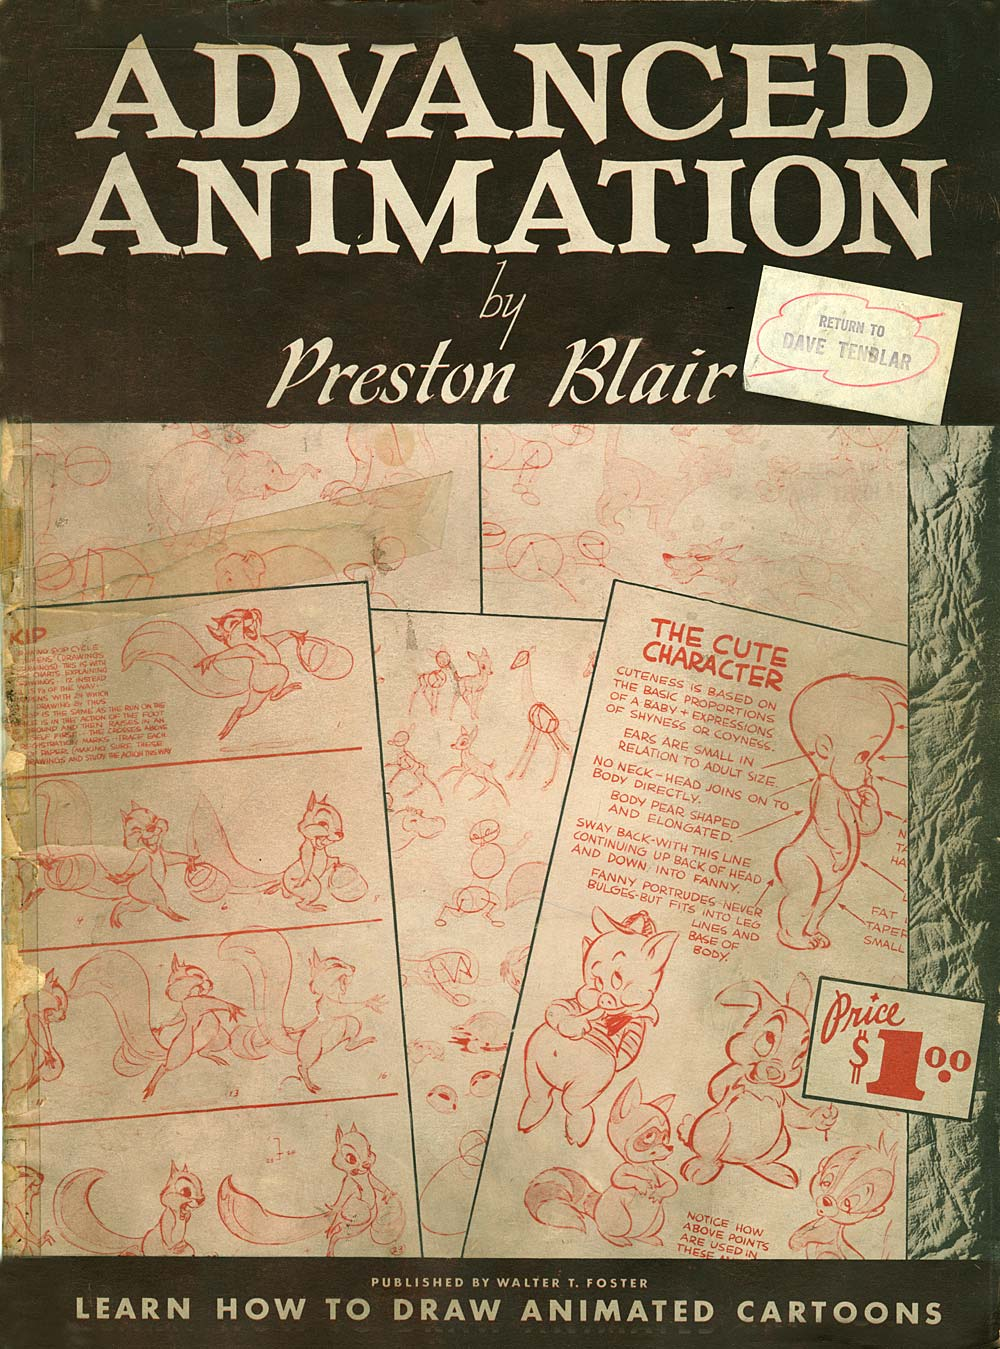 Instruction: Preston Blair's Advanced Animation